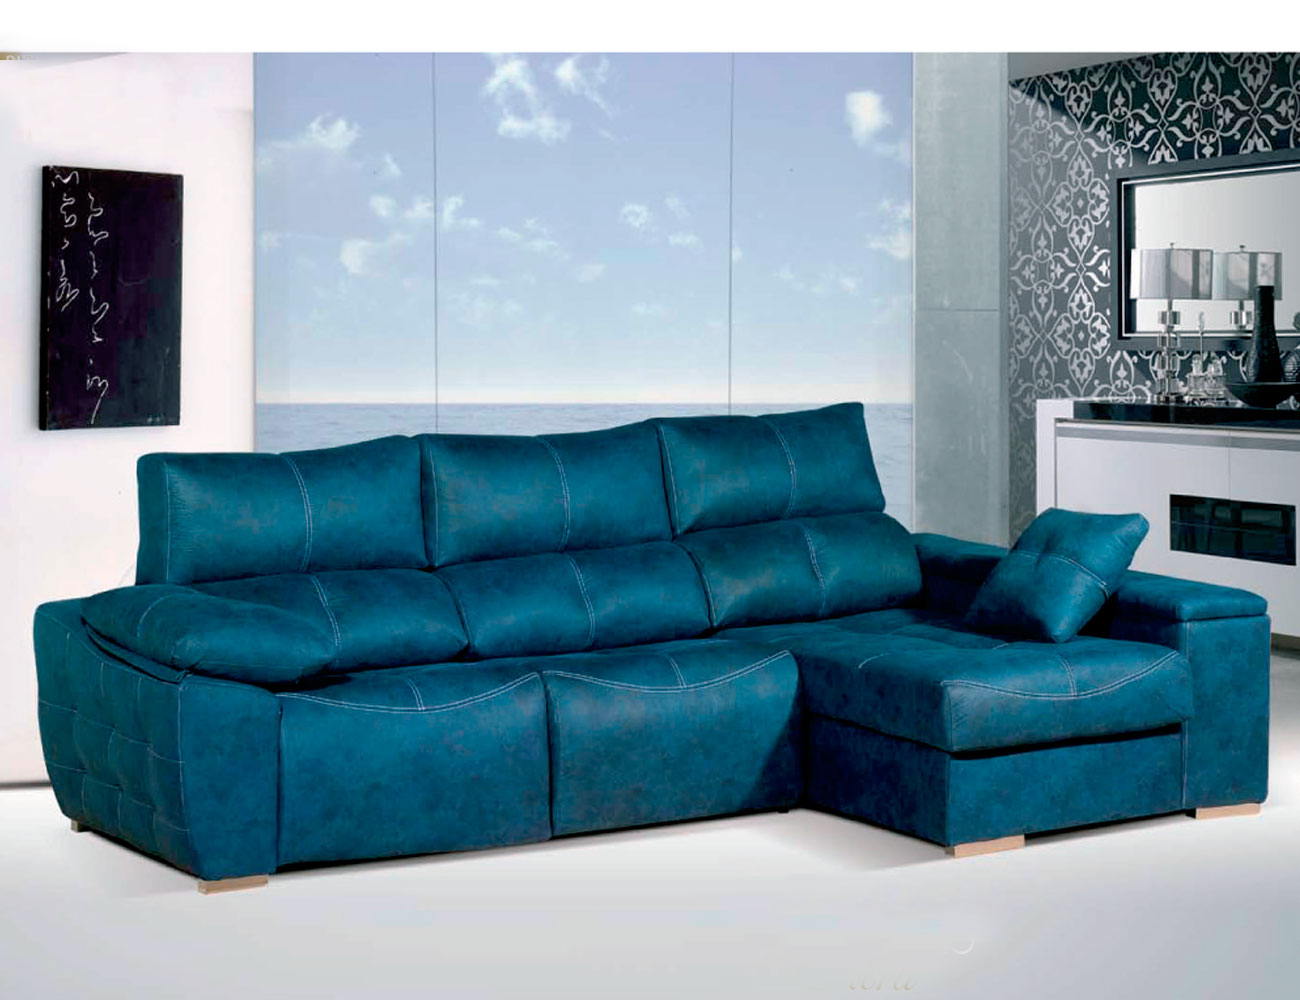 Sofa chaiselongue relax 2 motores anti manchas turquesa28